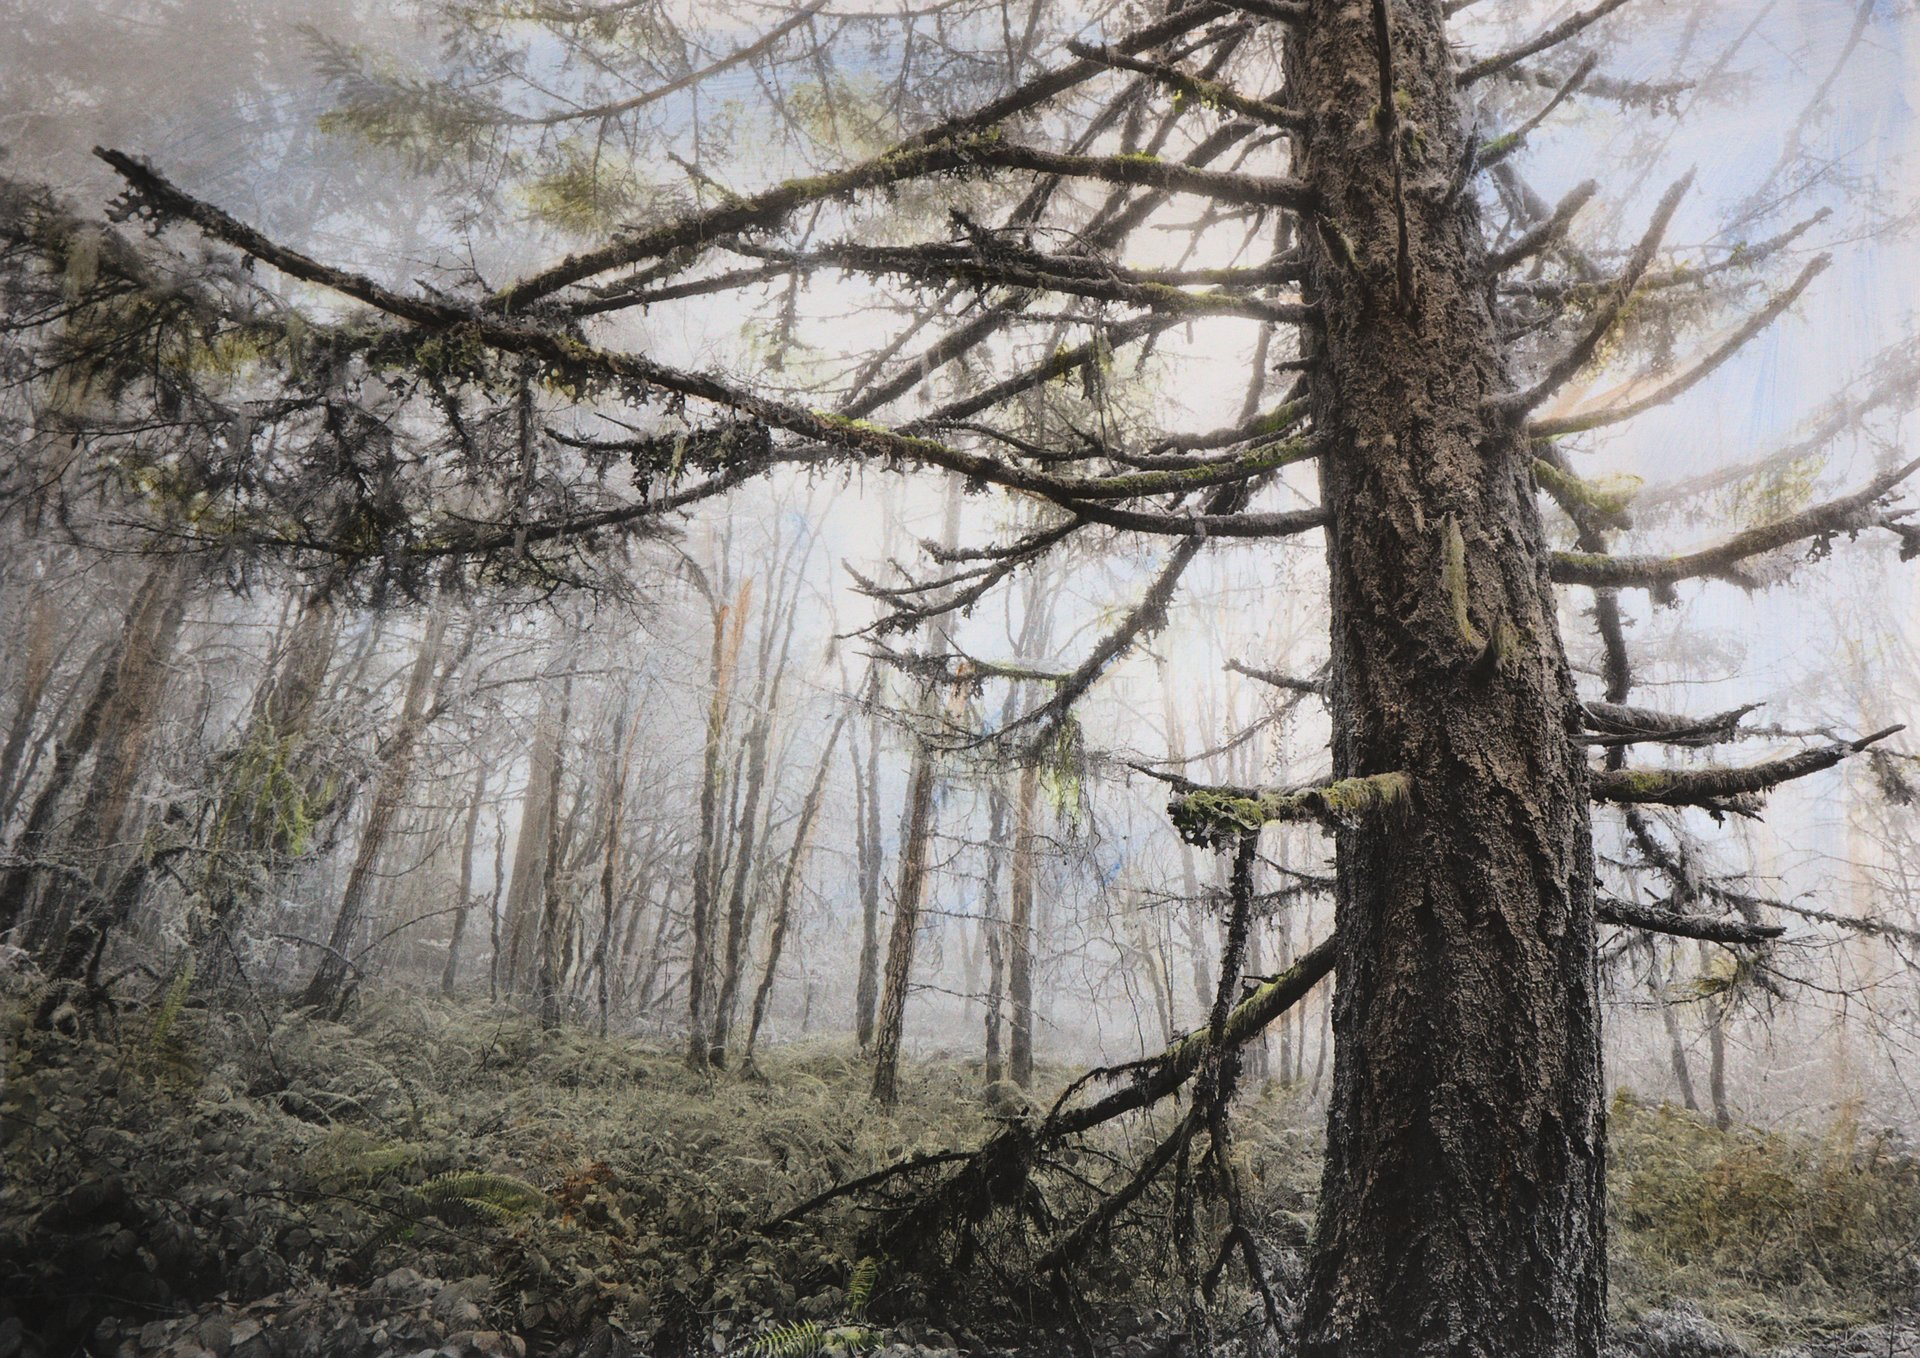 Fir Forest 2016.2: 22x30 inch hand-colored photo